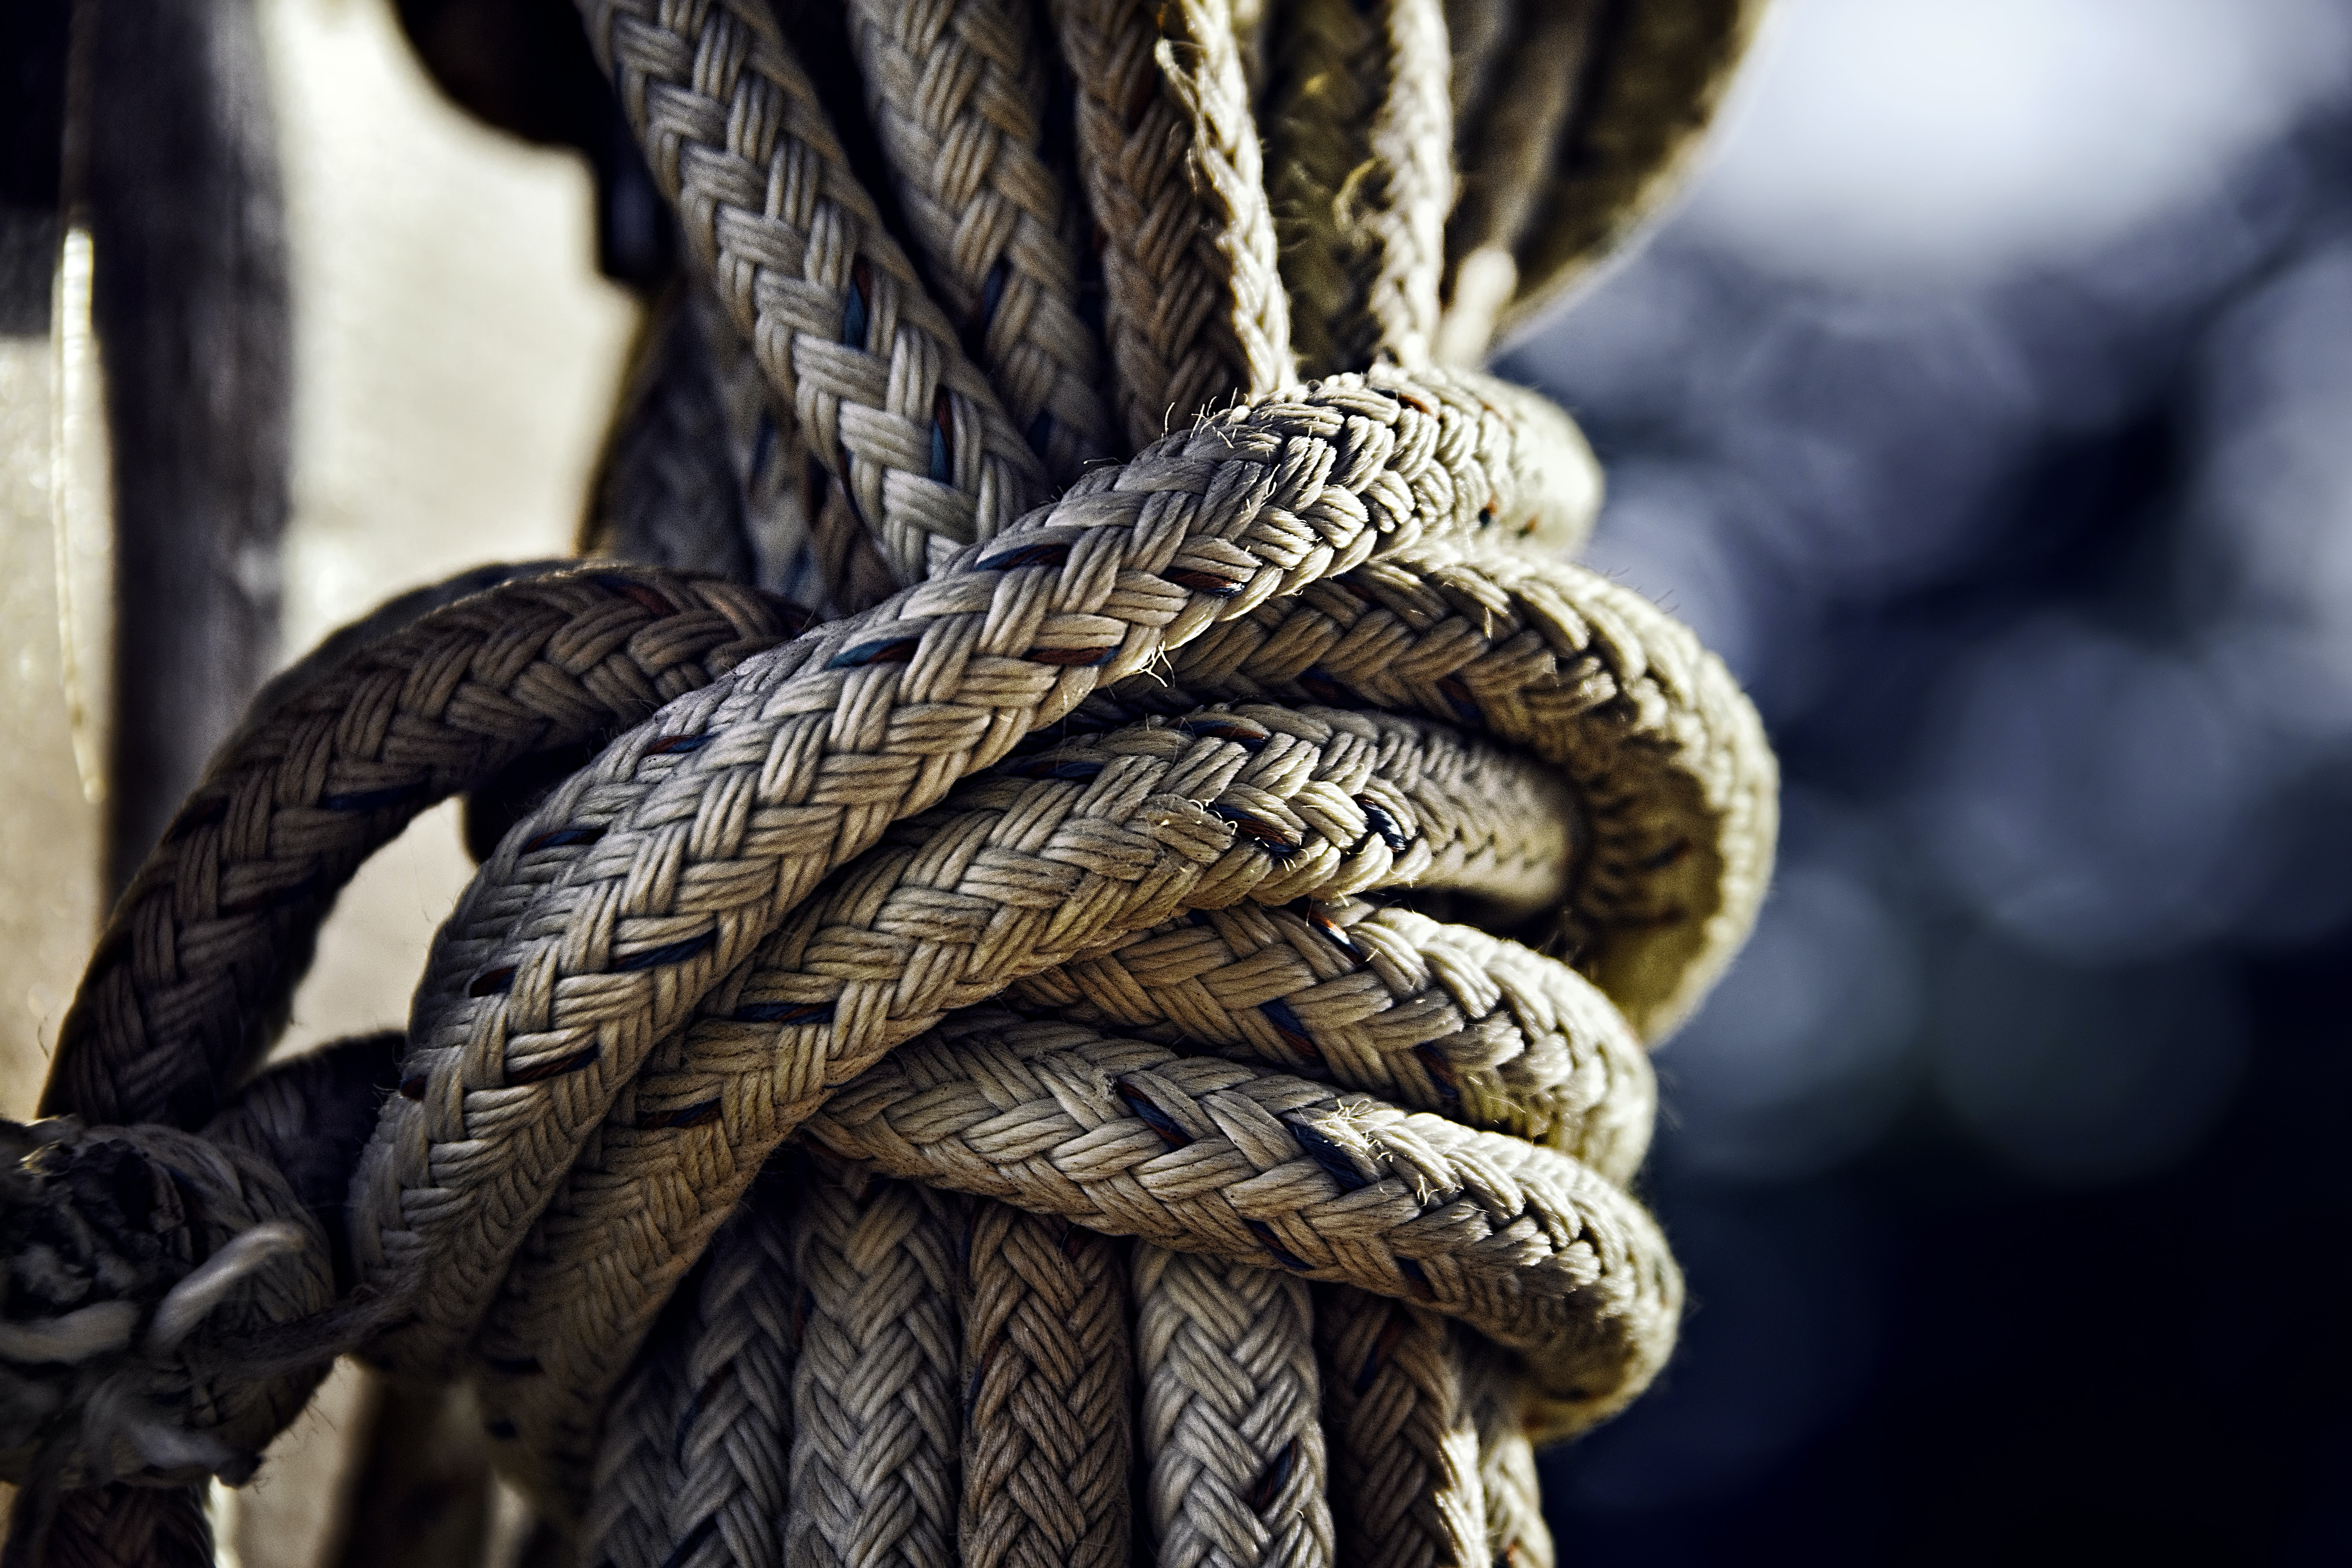 Close-up of a knot in a thick rope